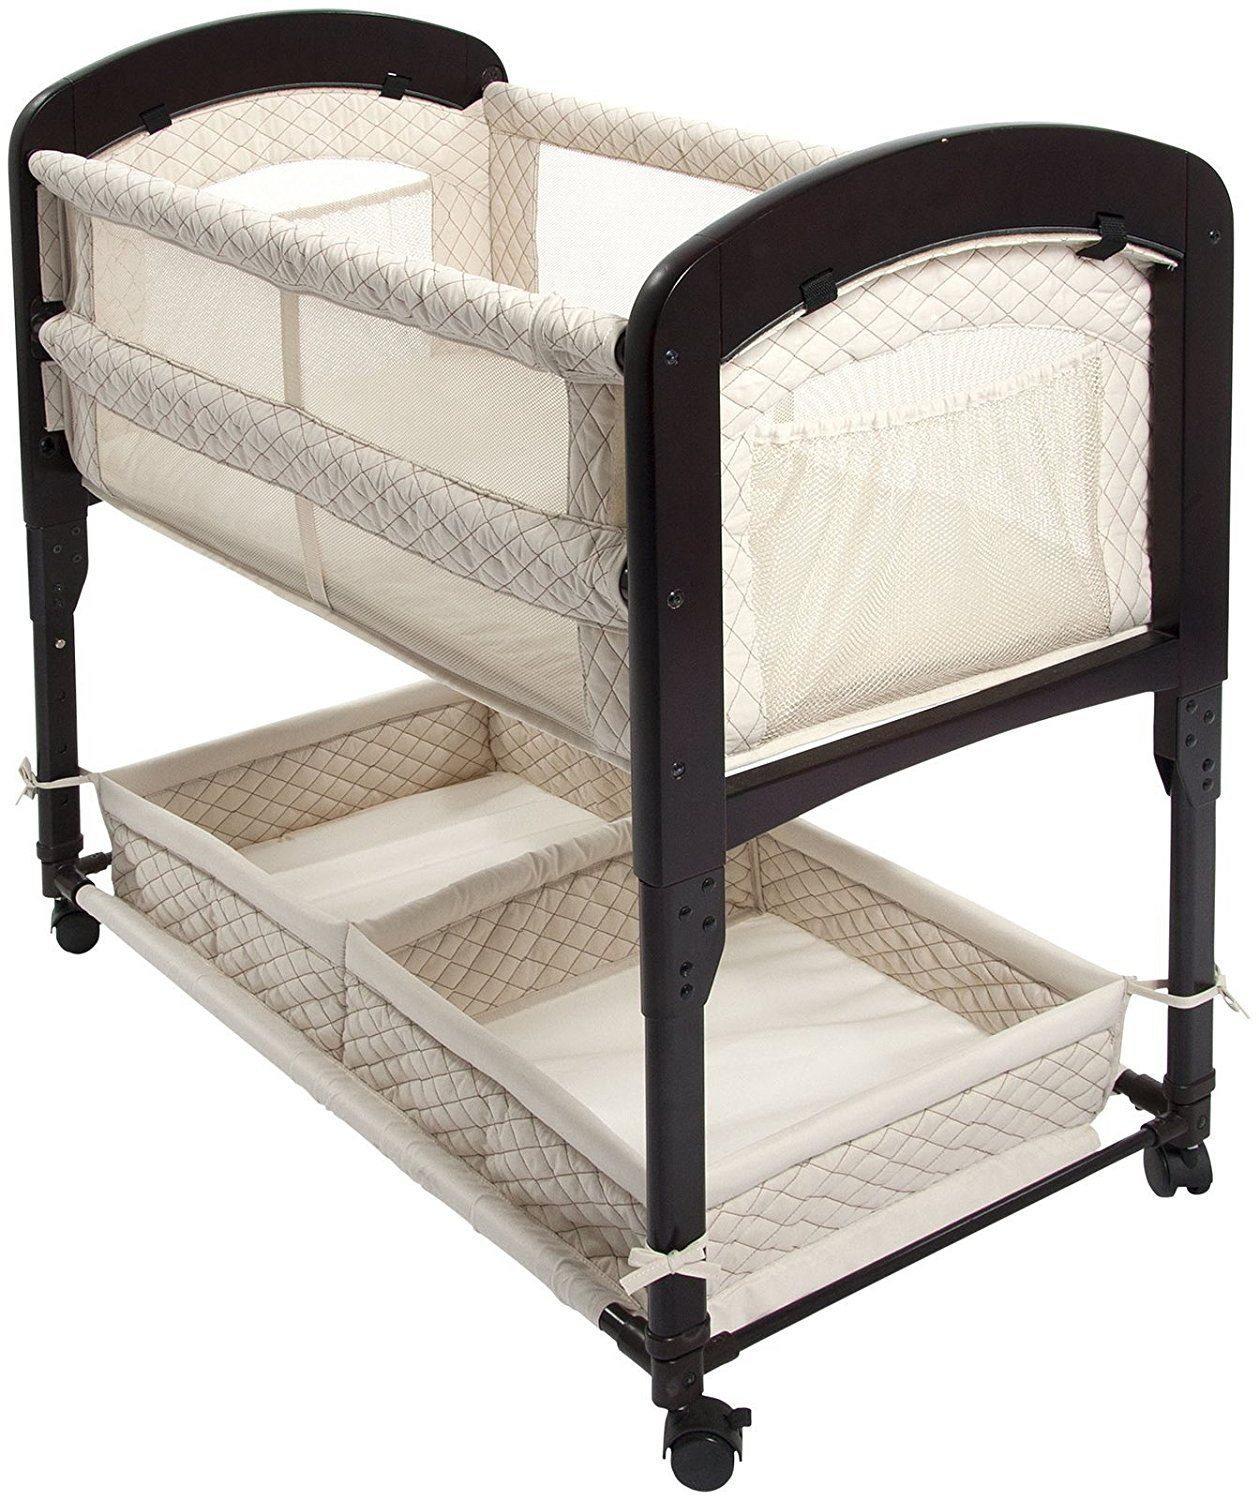 Co Sleeper Attach To Bed Arm S Reach Concepts Cambria Co Sleeper